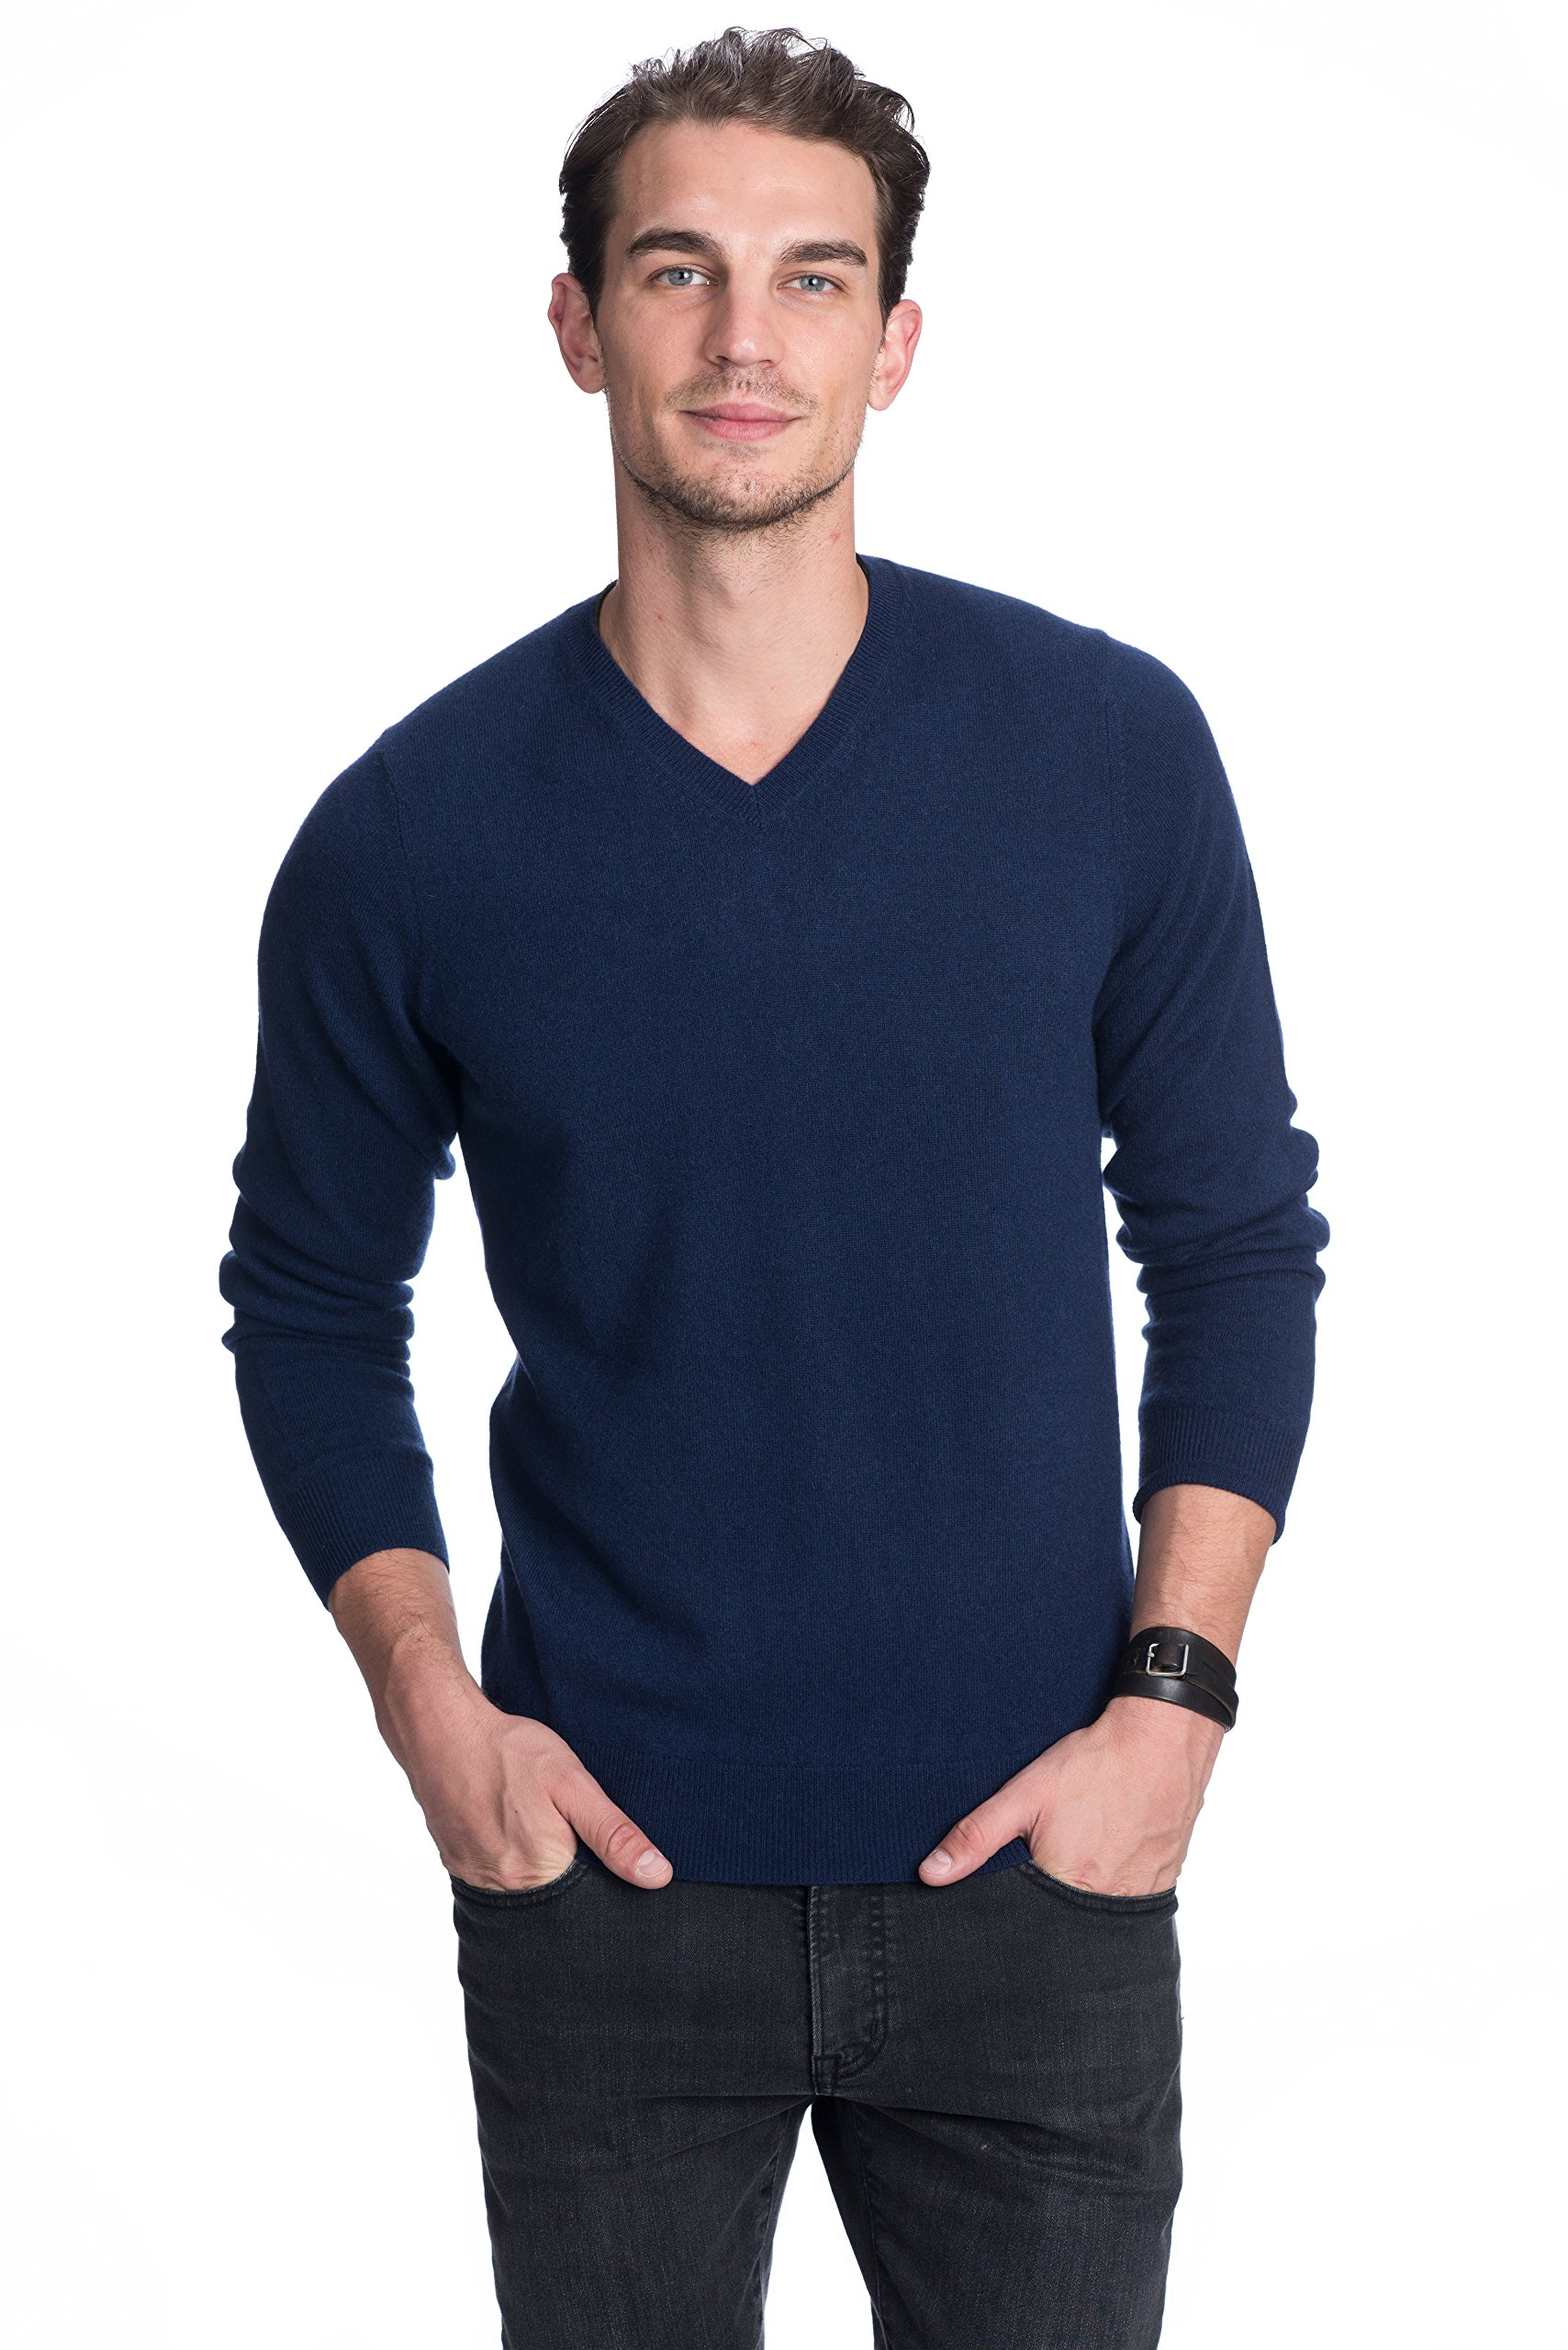 State Cashmere Men's 100% Pure Cashmere Long Sleeve Pullover V Neck Sweater (Large, Navy)